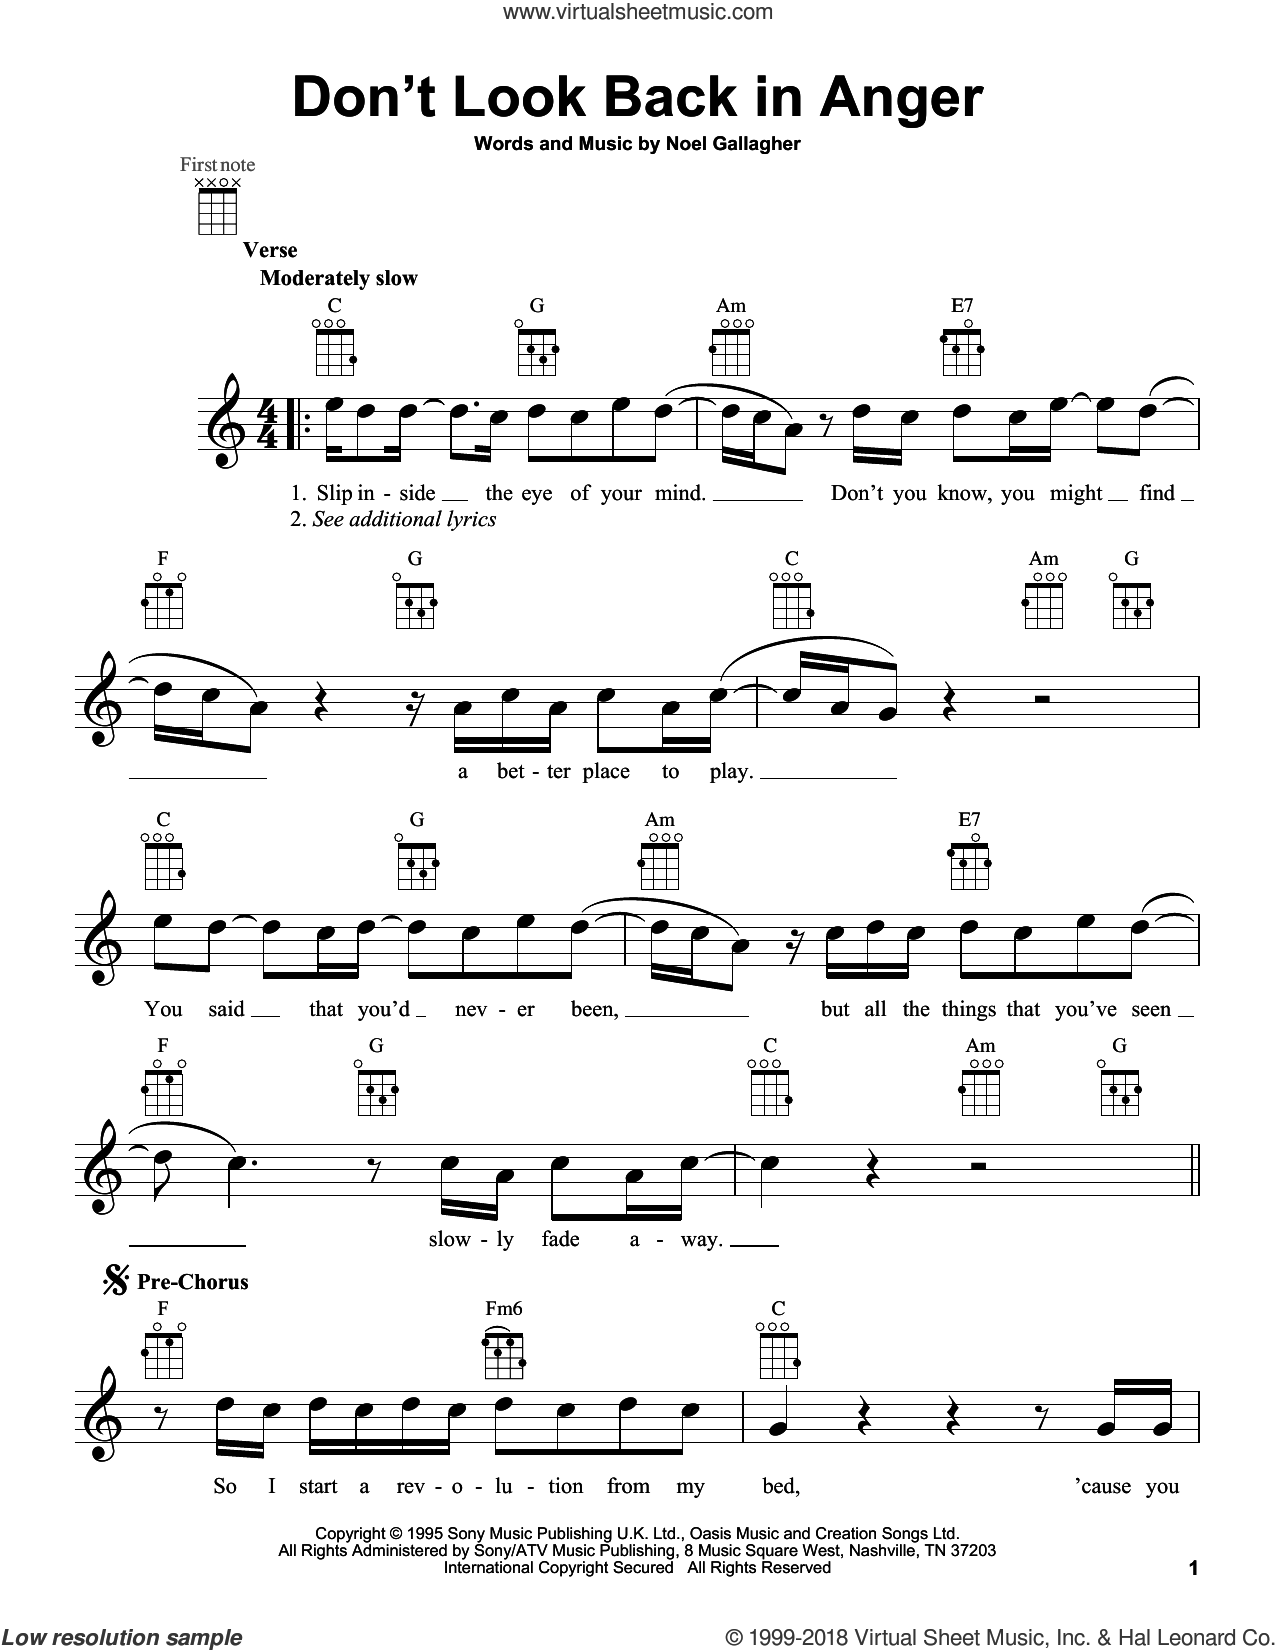 Don't Look Back In Anger sheet music for ukulele by Oasis, intermediate skill level